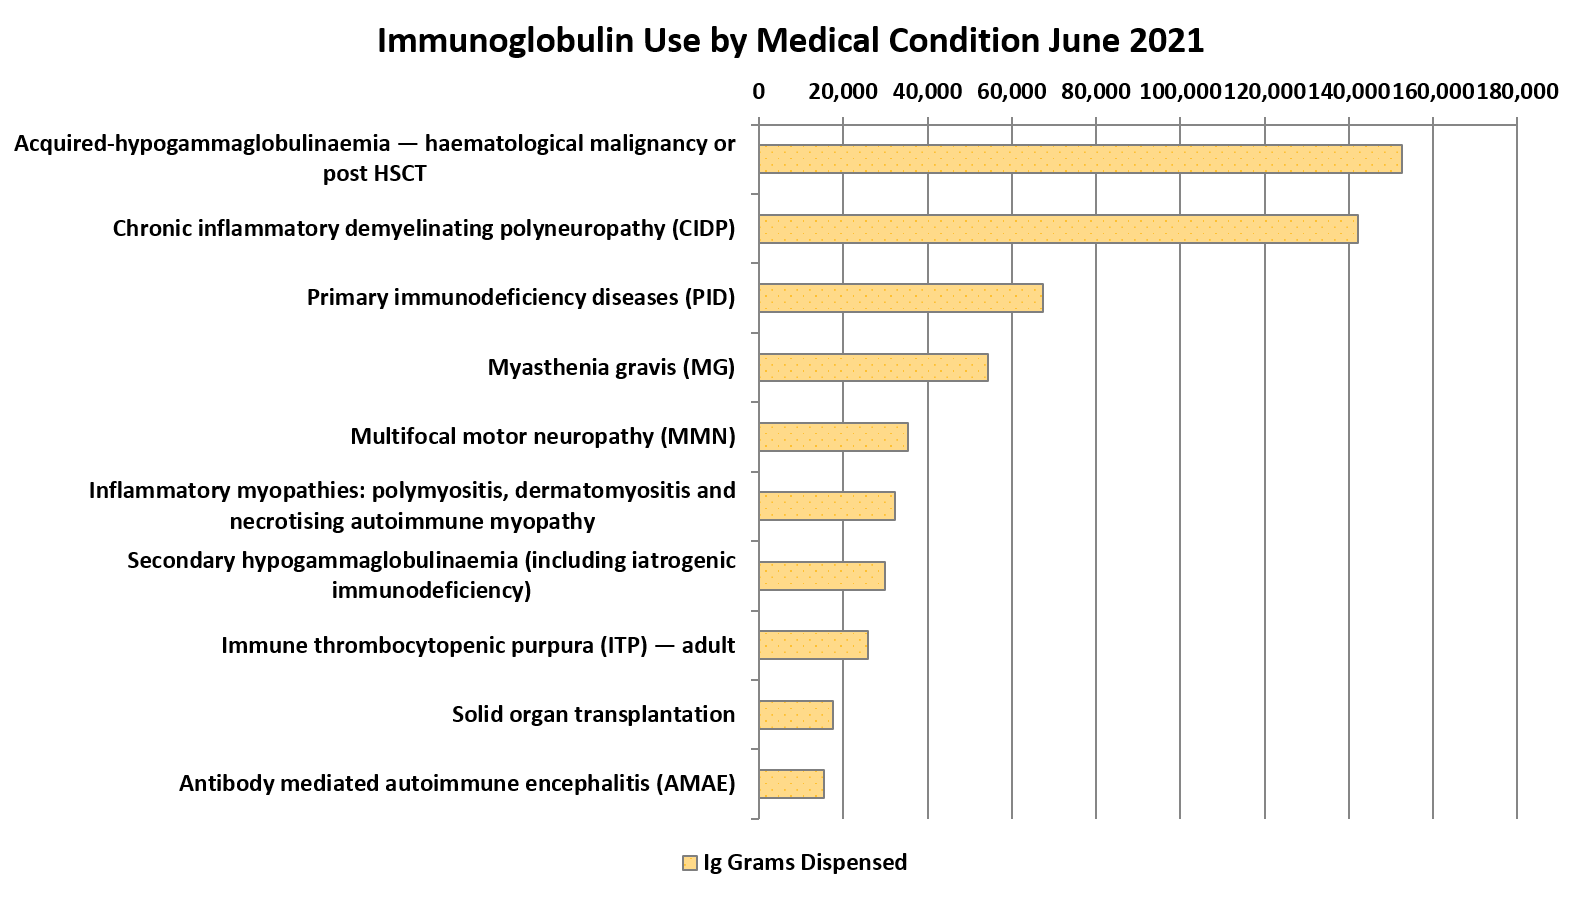 This graph shows the medical conditions which account for the highest use (grams dispensed) of Ig products.